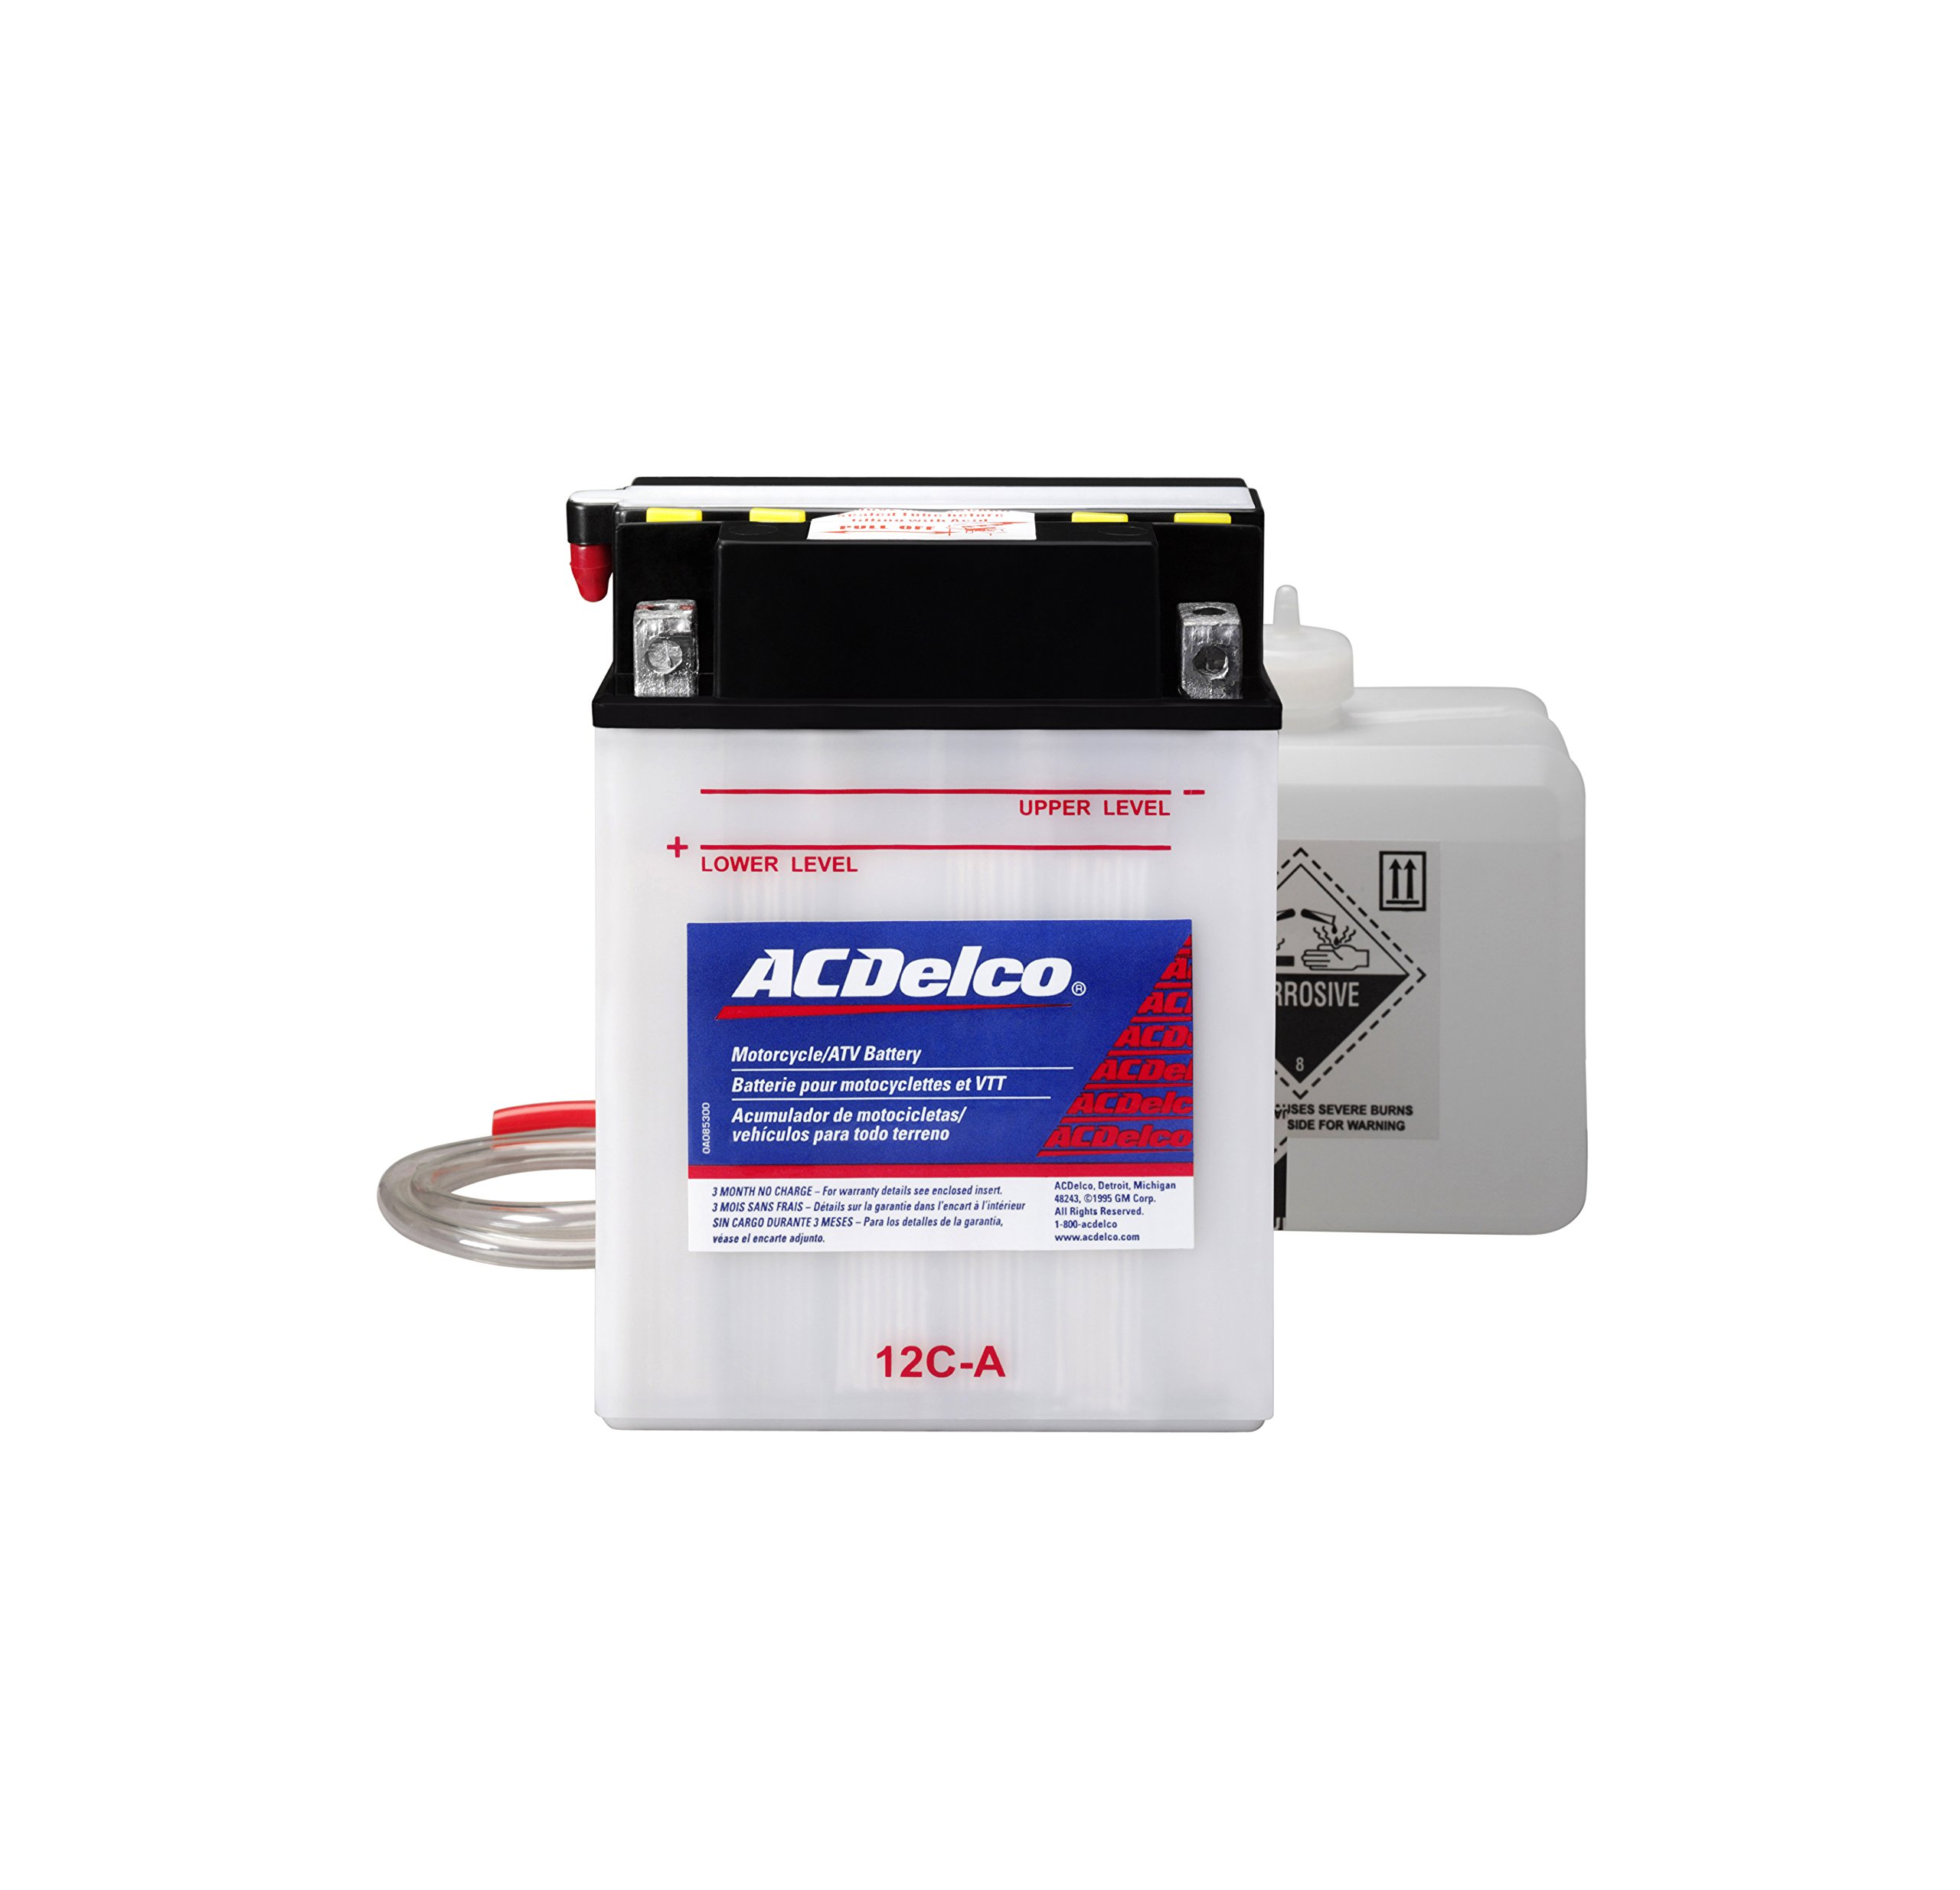 ACDelco AB12CA Specialty Conventional Powersports JIS 12C-A Battery